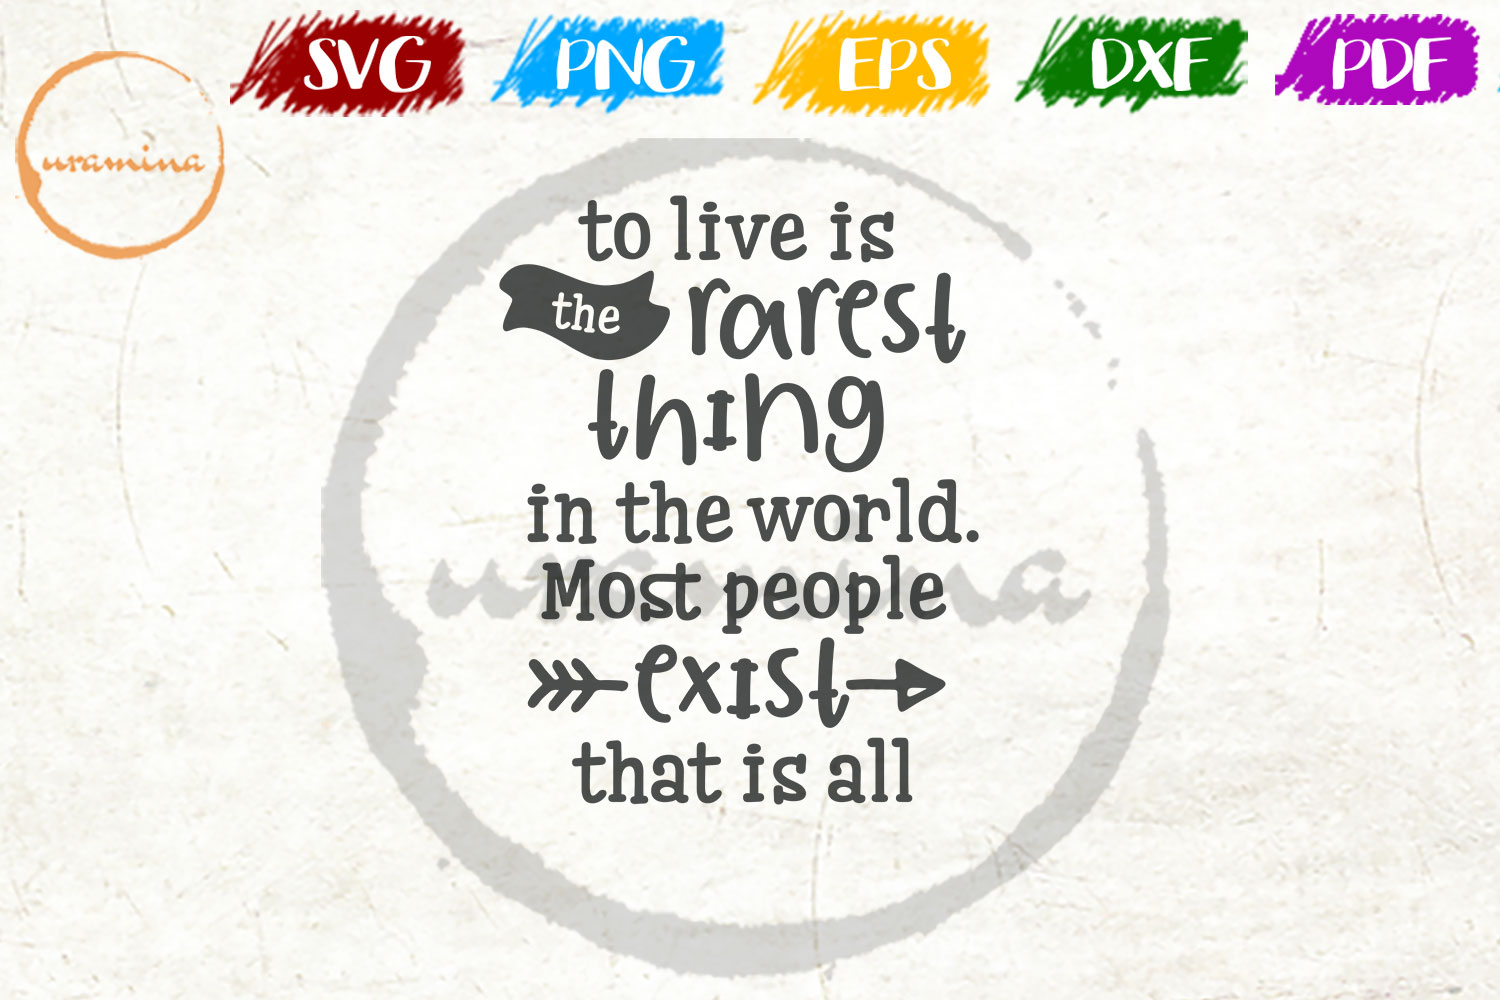 Download Free To Live Is The Rarest Thing In The World Graphic By Uramina for Cricut Explore, Silhouette and other cutting machines.